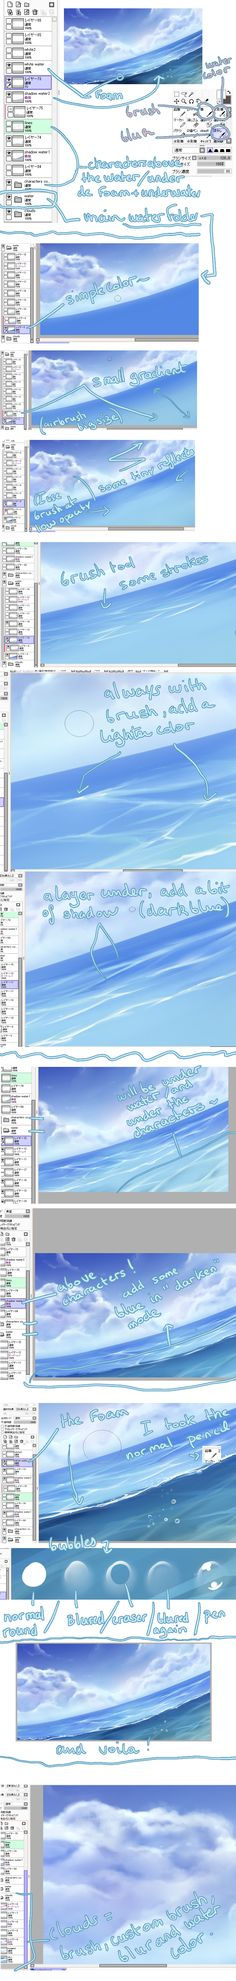 water tutorial by kuro-mai.deviantart.com on @deviantART